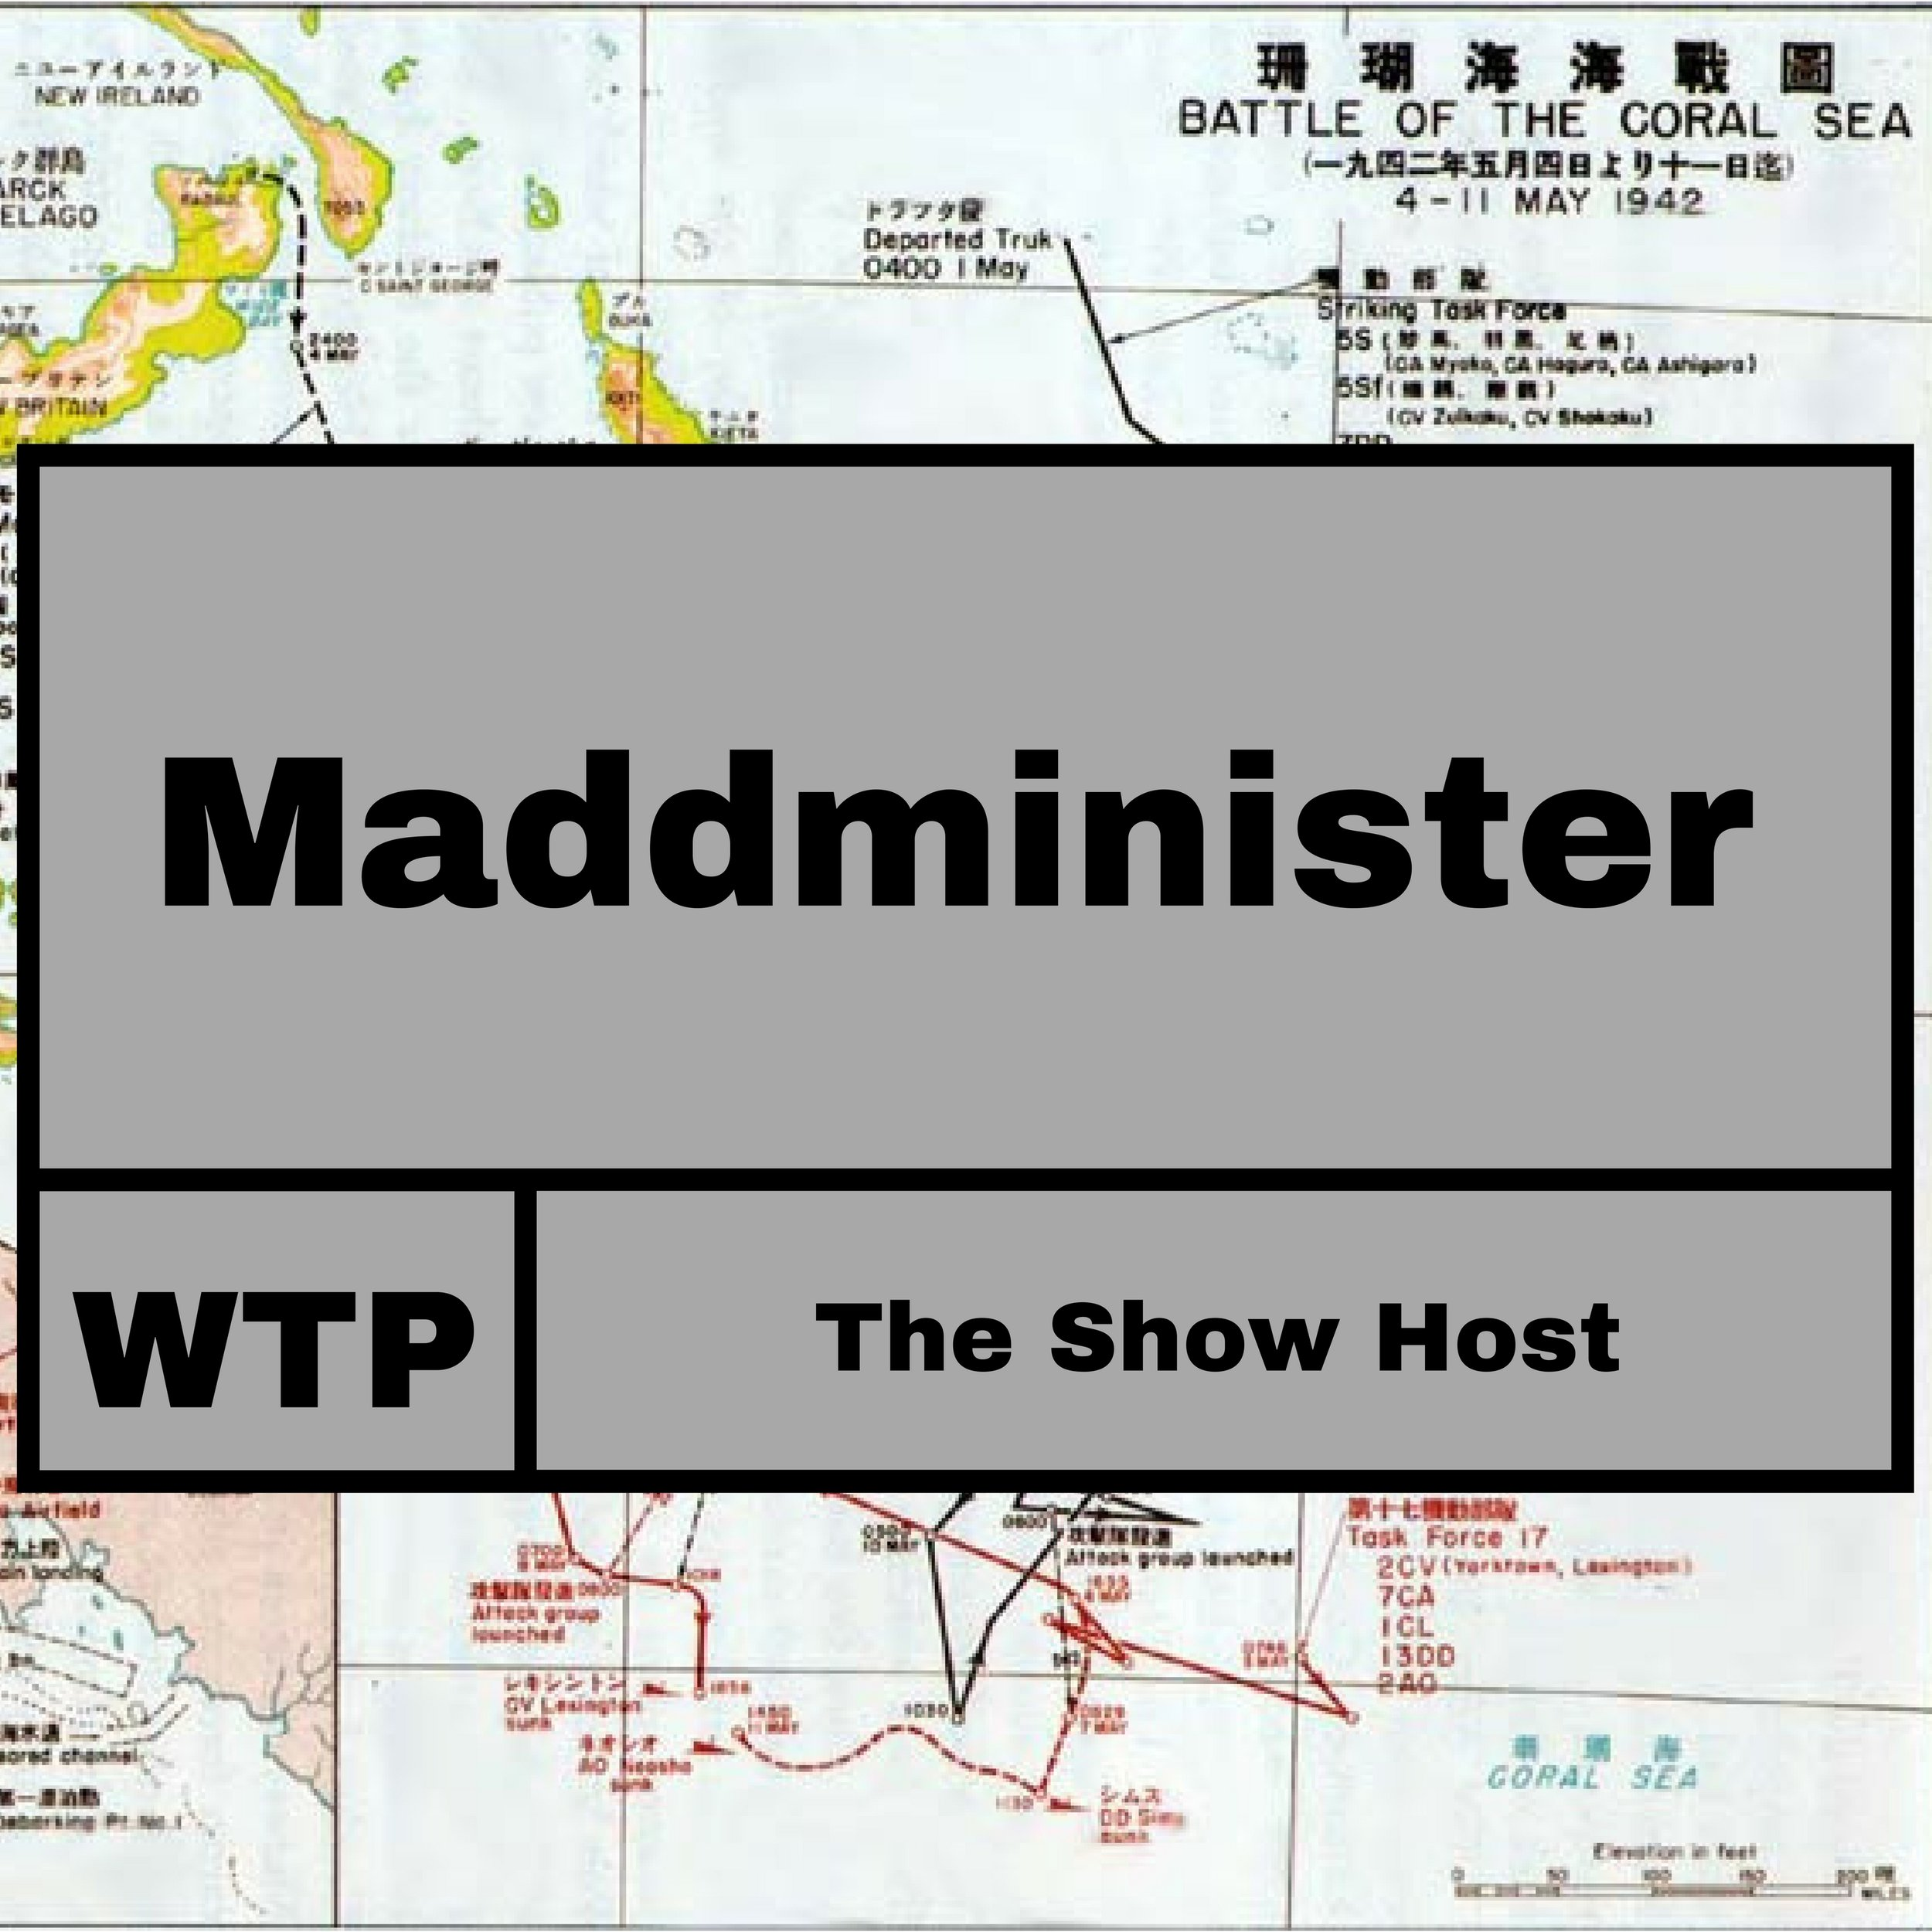 Maddminister the Warships Tactics Host